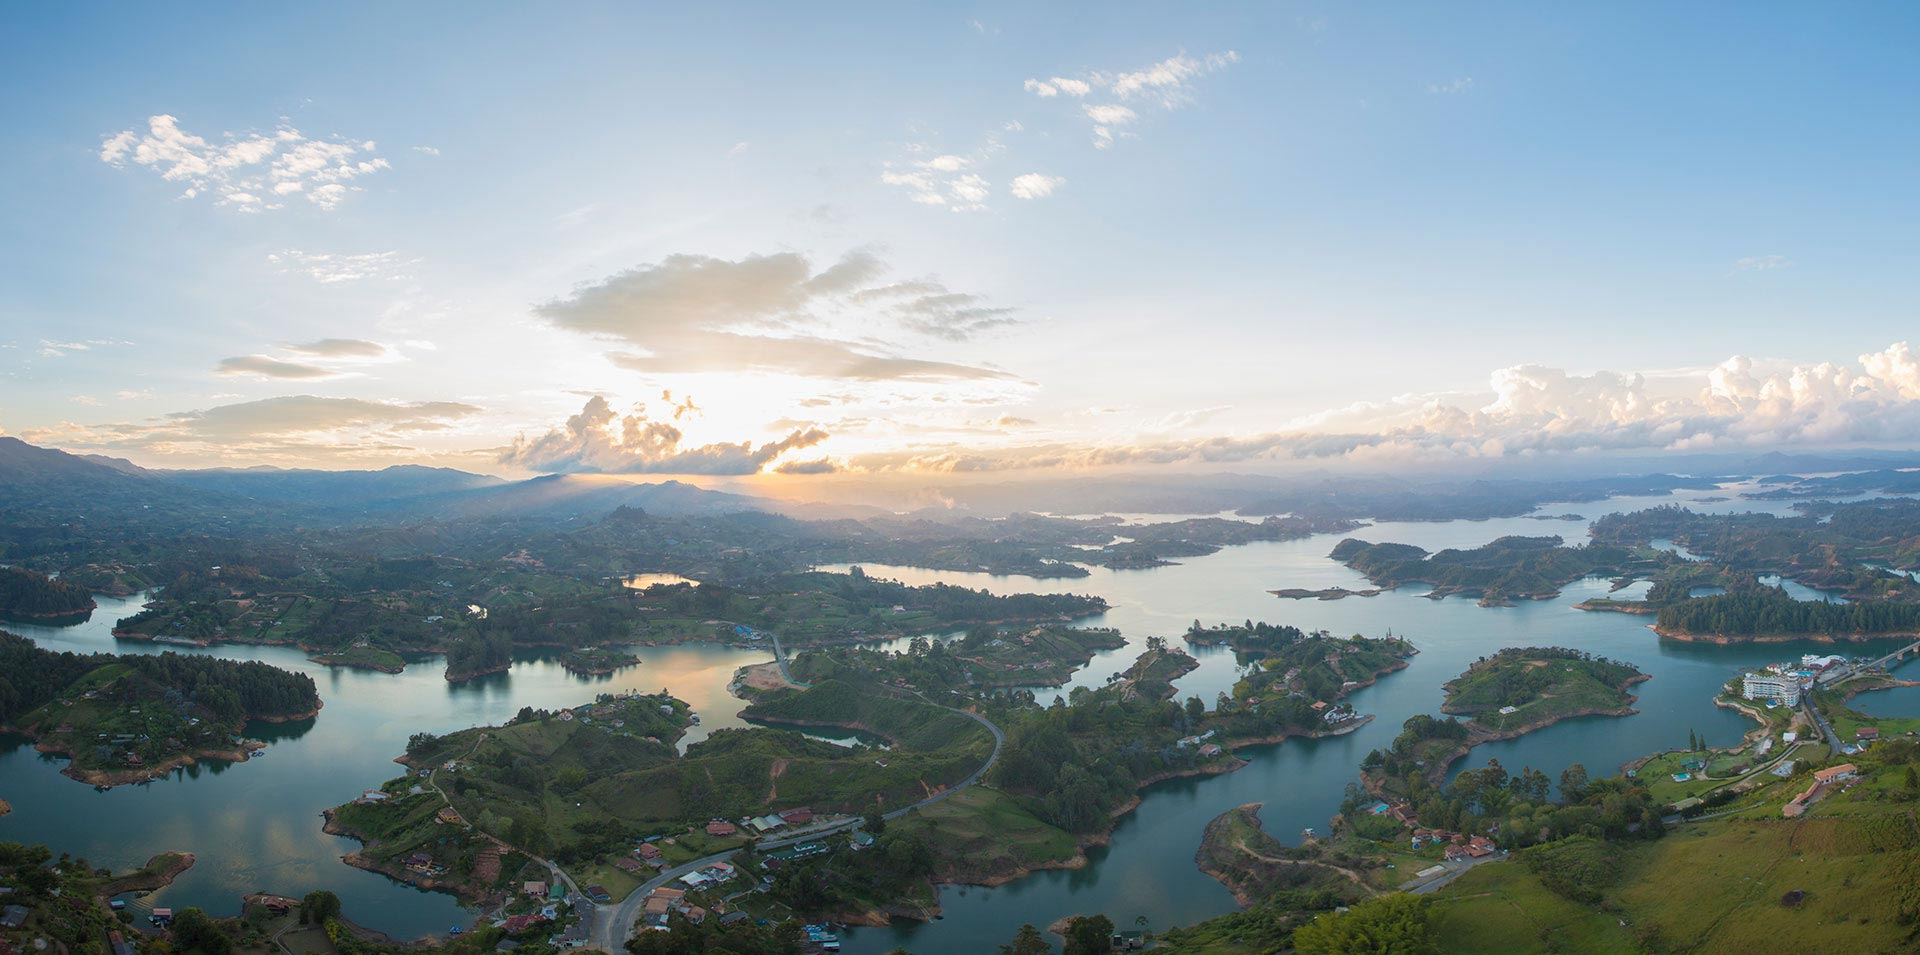 Lakes and Islands in Guatape, Colombia